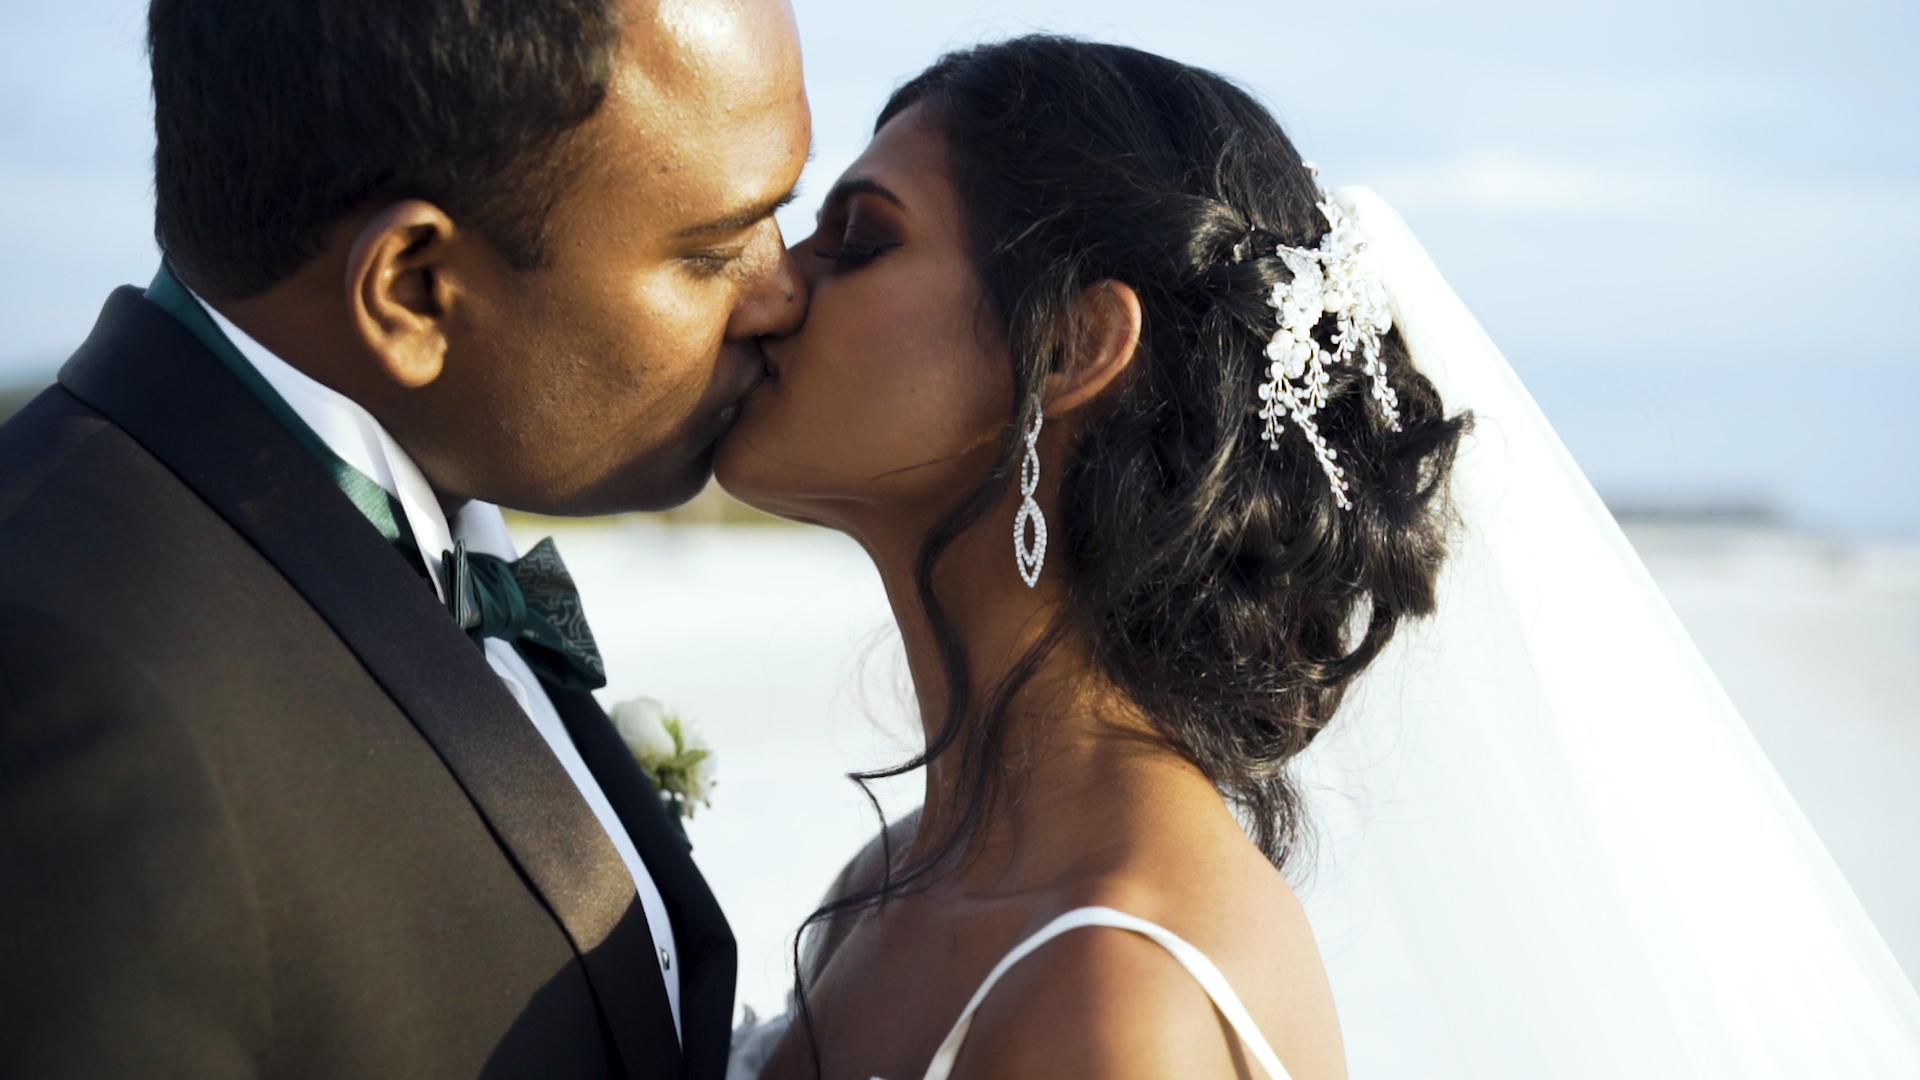 Anusha + Nikhit | Bonita Springs, Florida | Hyatt Regency Coconut Point Resort & Spa